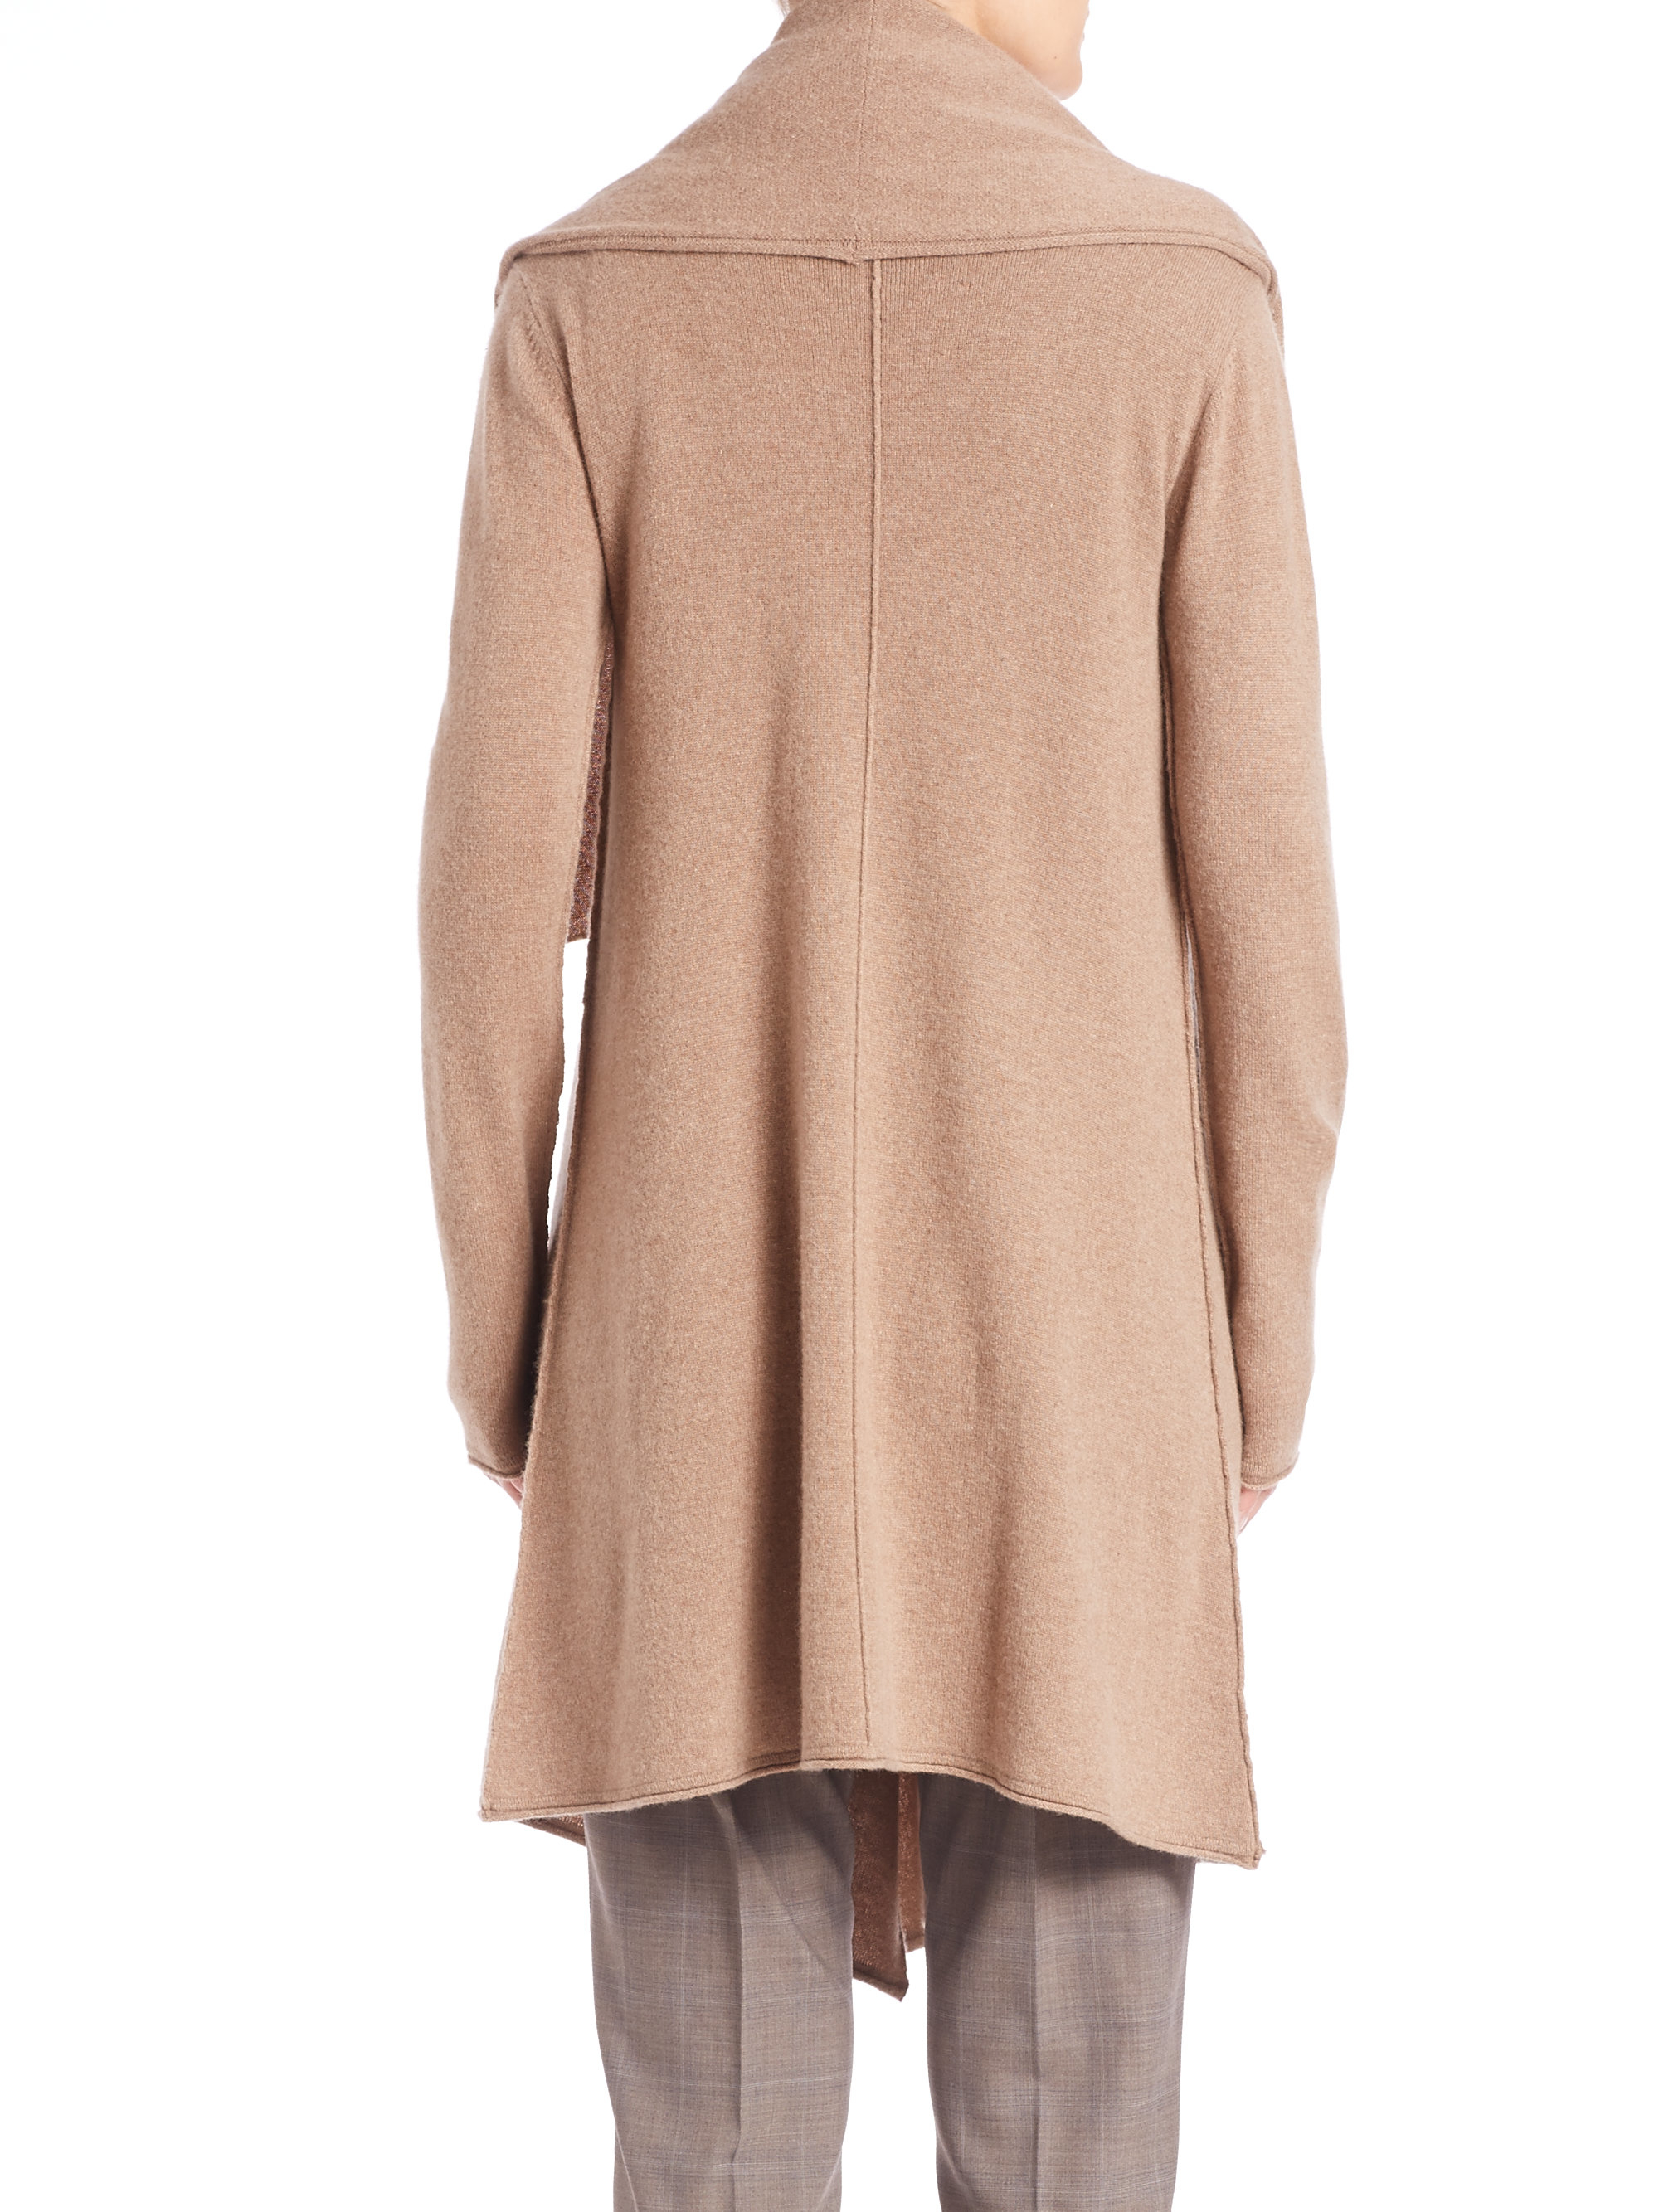 Long Cardigan Sweater For Women